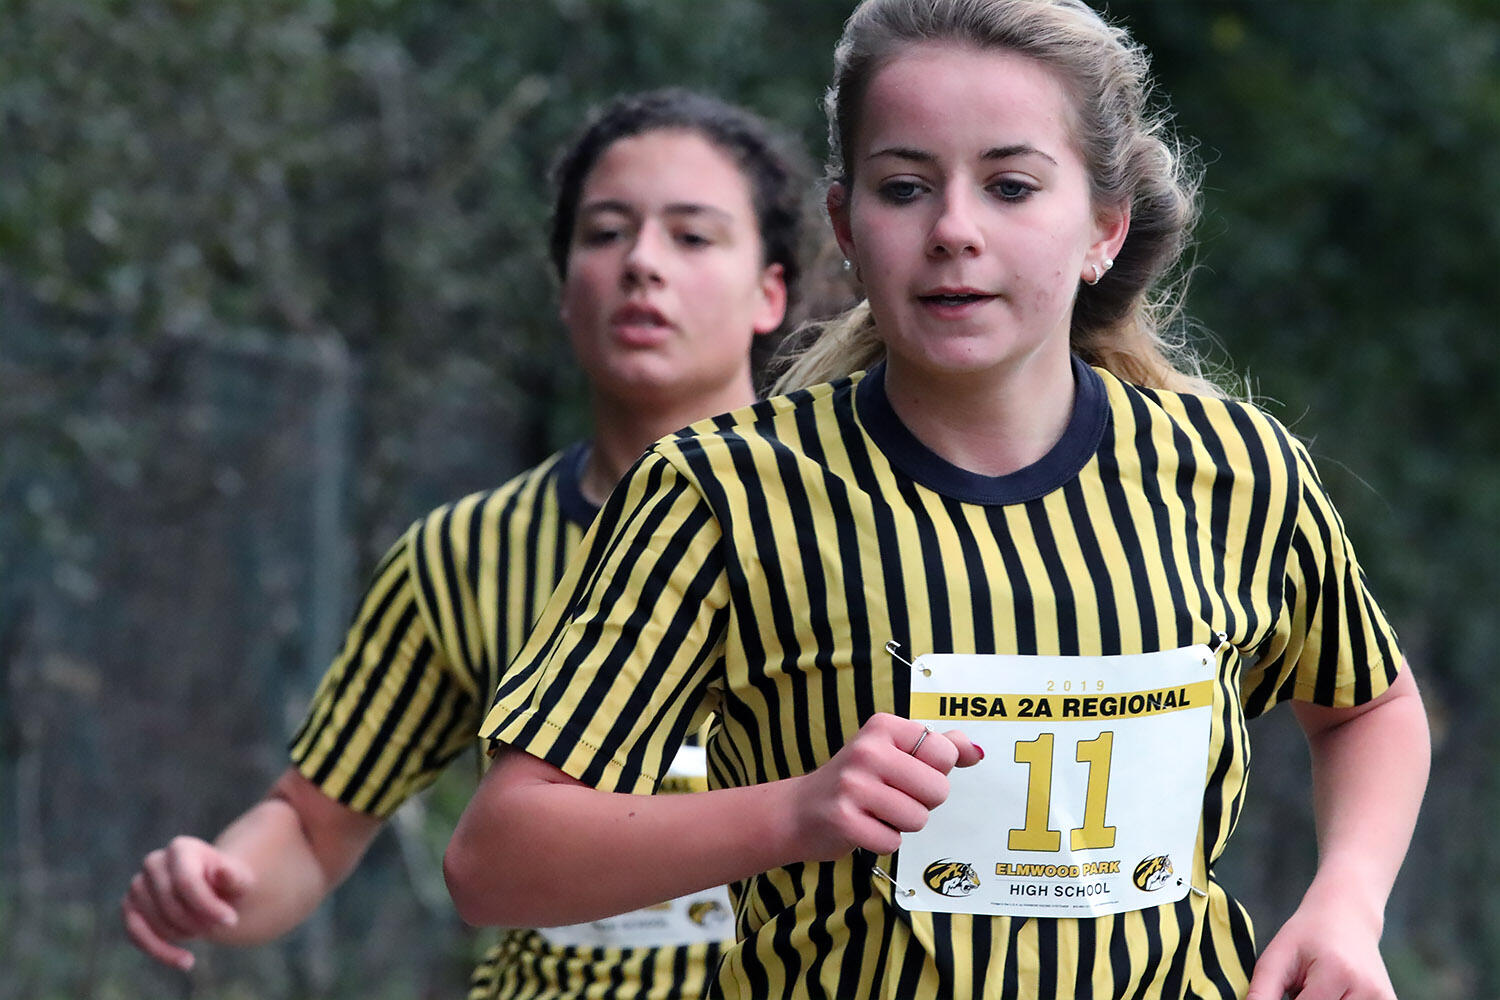 Gabi Szado competes in cross country.